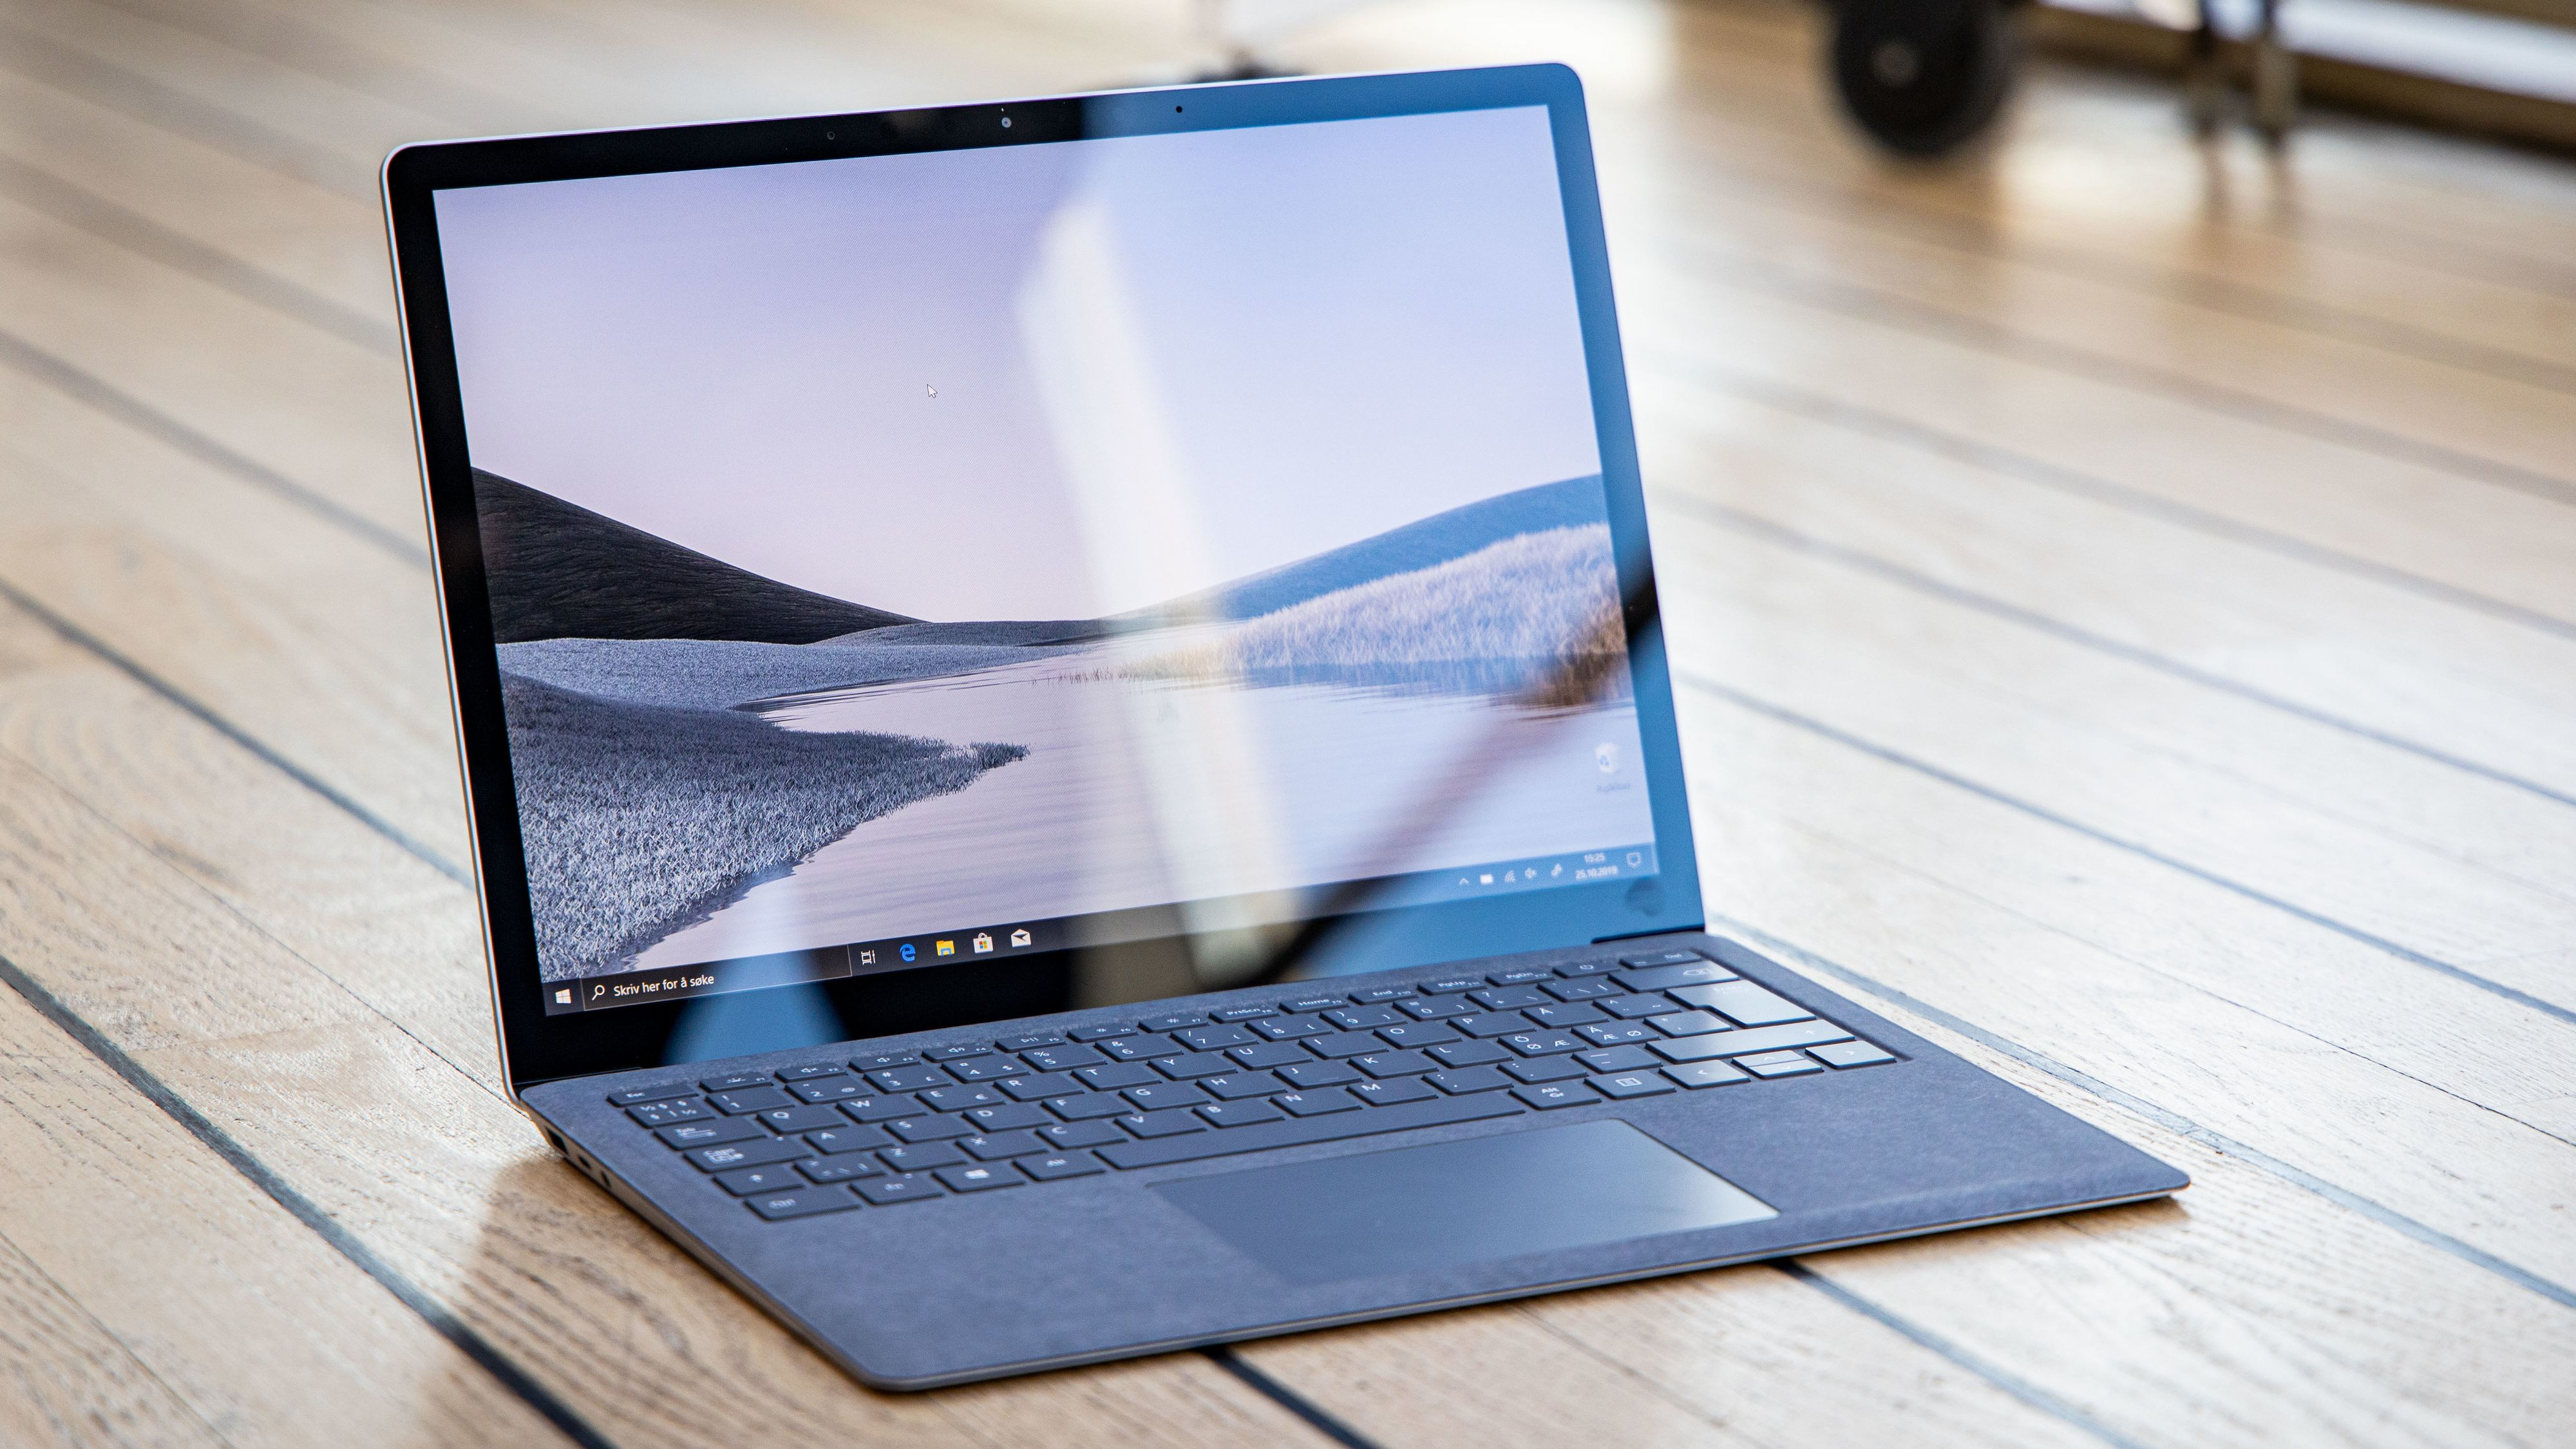 Bare én ting holder Surface Laptop 3 unna toppscore